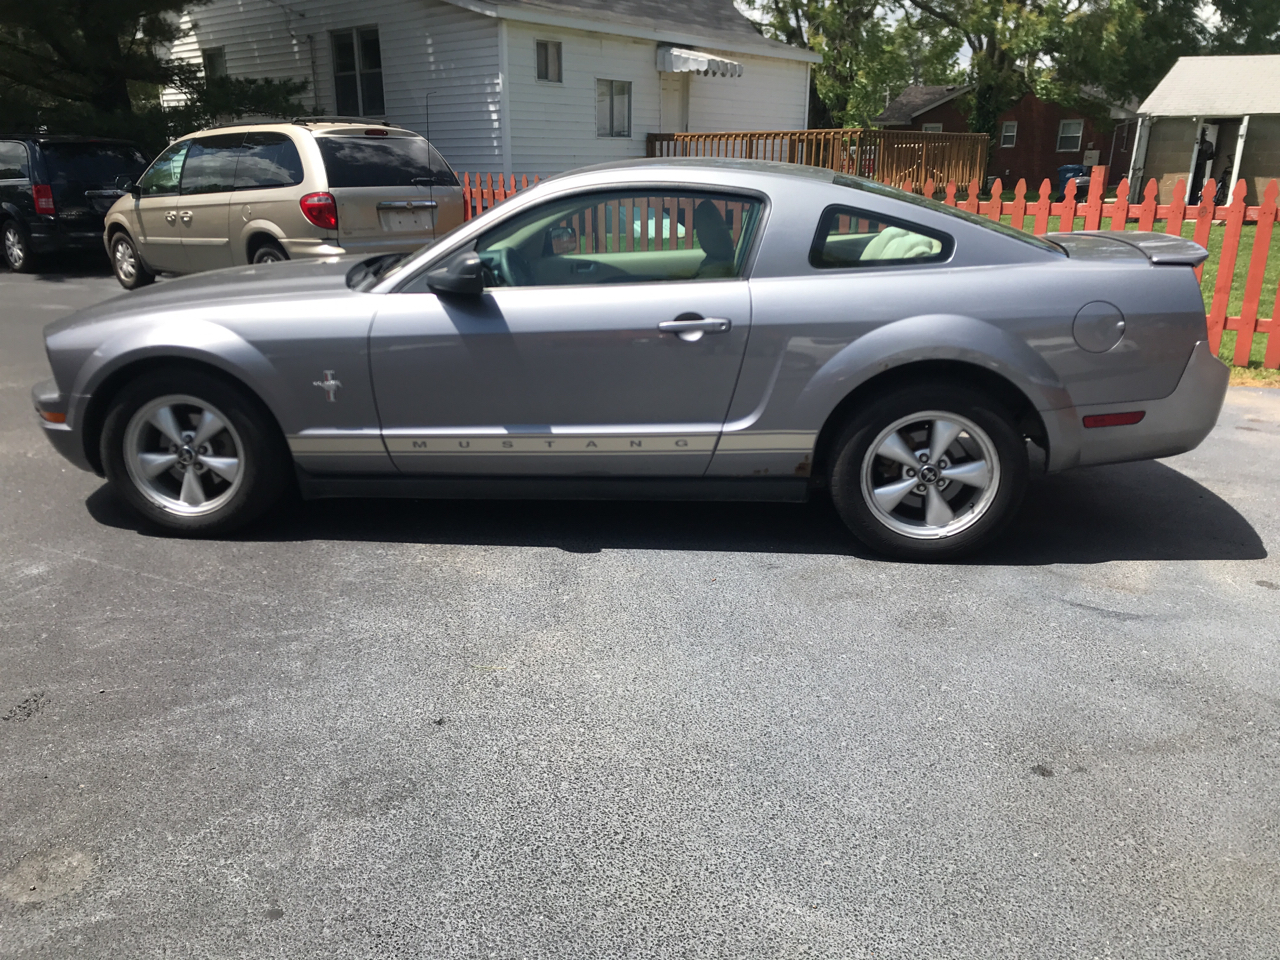 Ford Mustang V6 Deluxe Coupe 2007